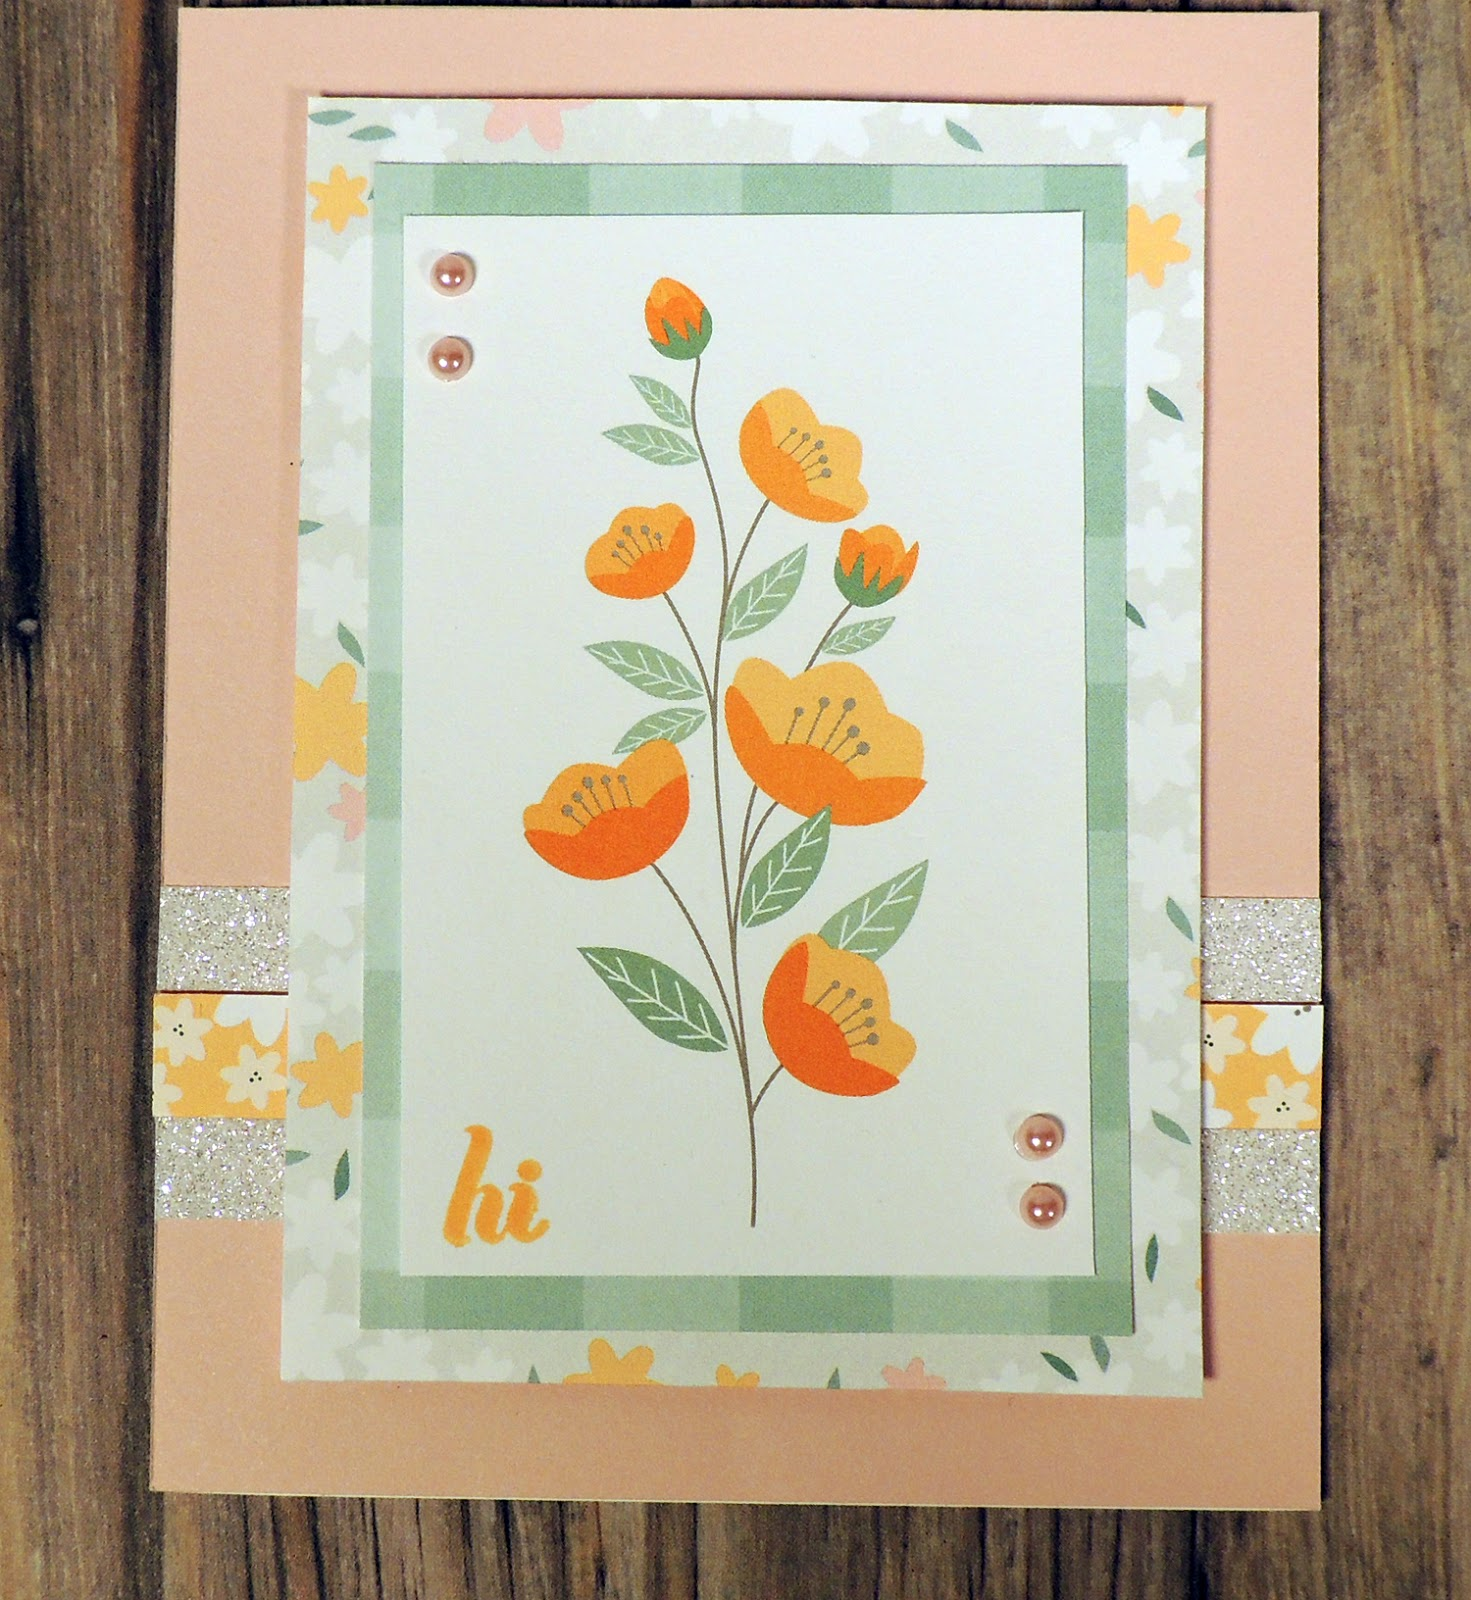 Dots Scrapbooking Using Picture My Life Cards To Make Greeting Cards